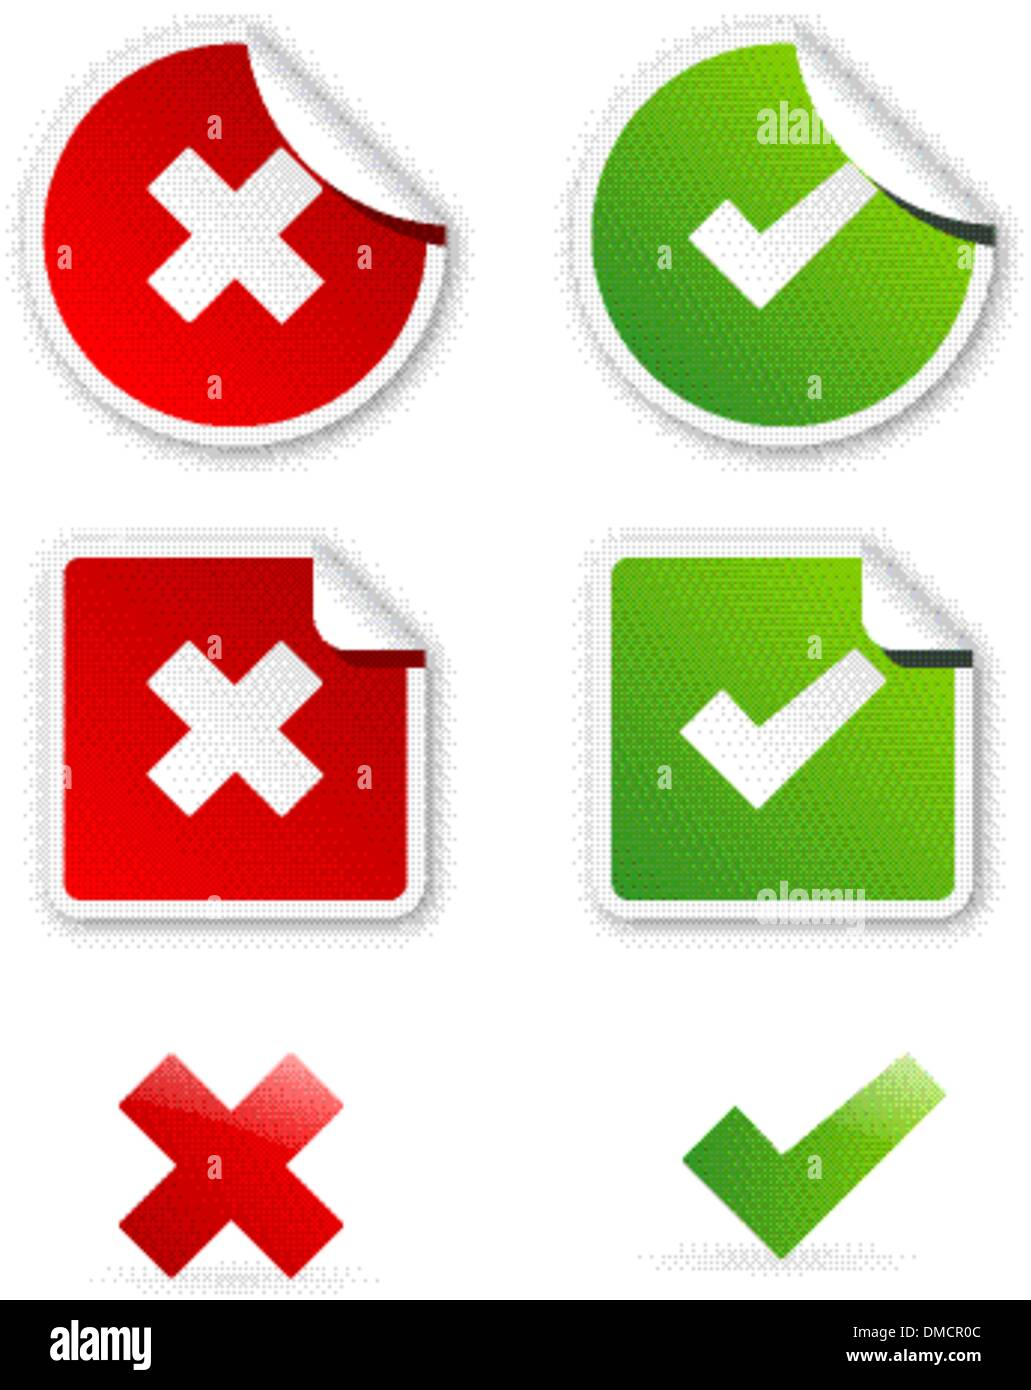 icons of validation - Stock Image